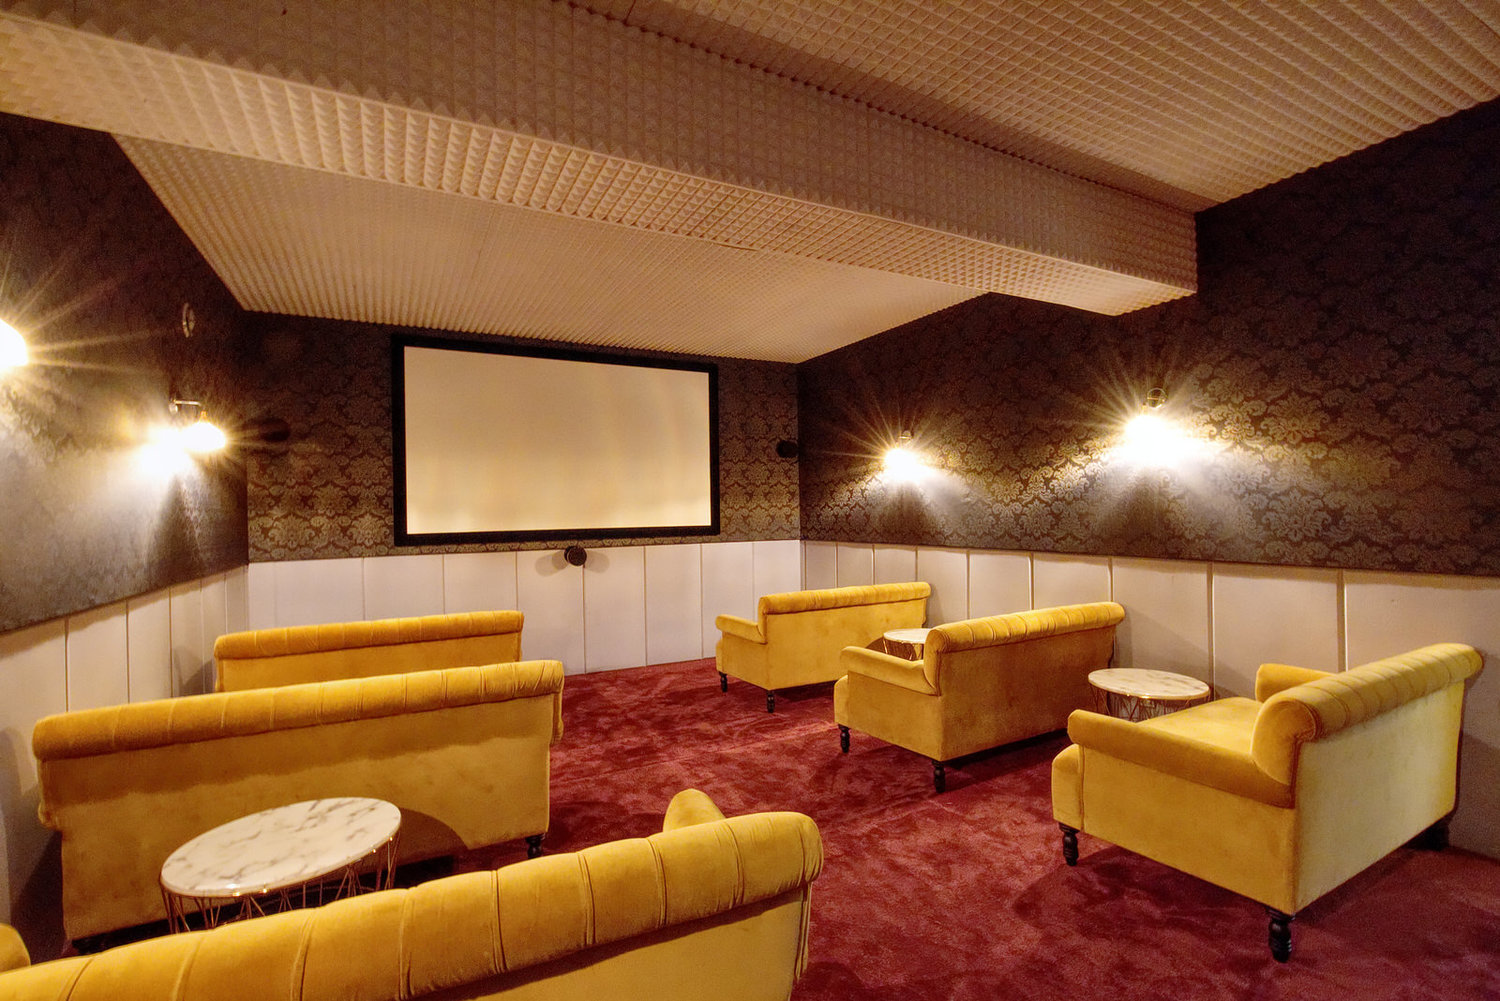 Salle+de+projection+-+Cinema+-+Coworking+space.jpg